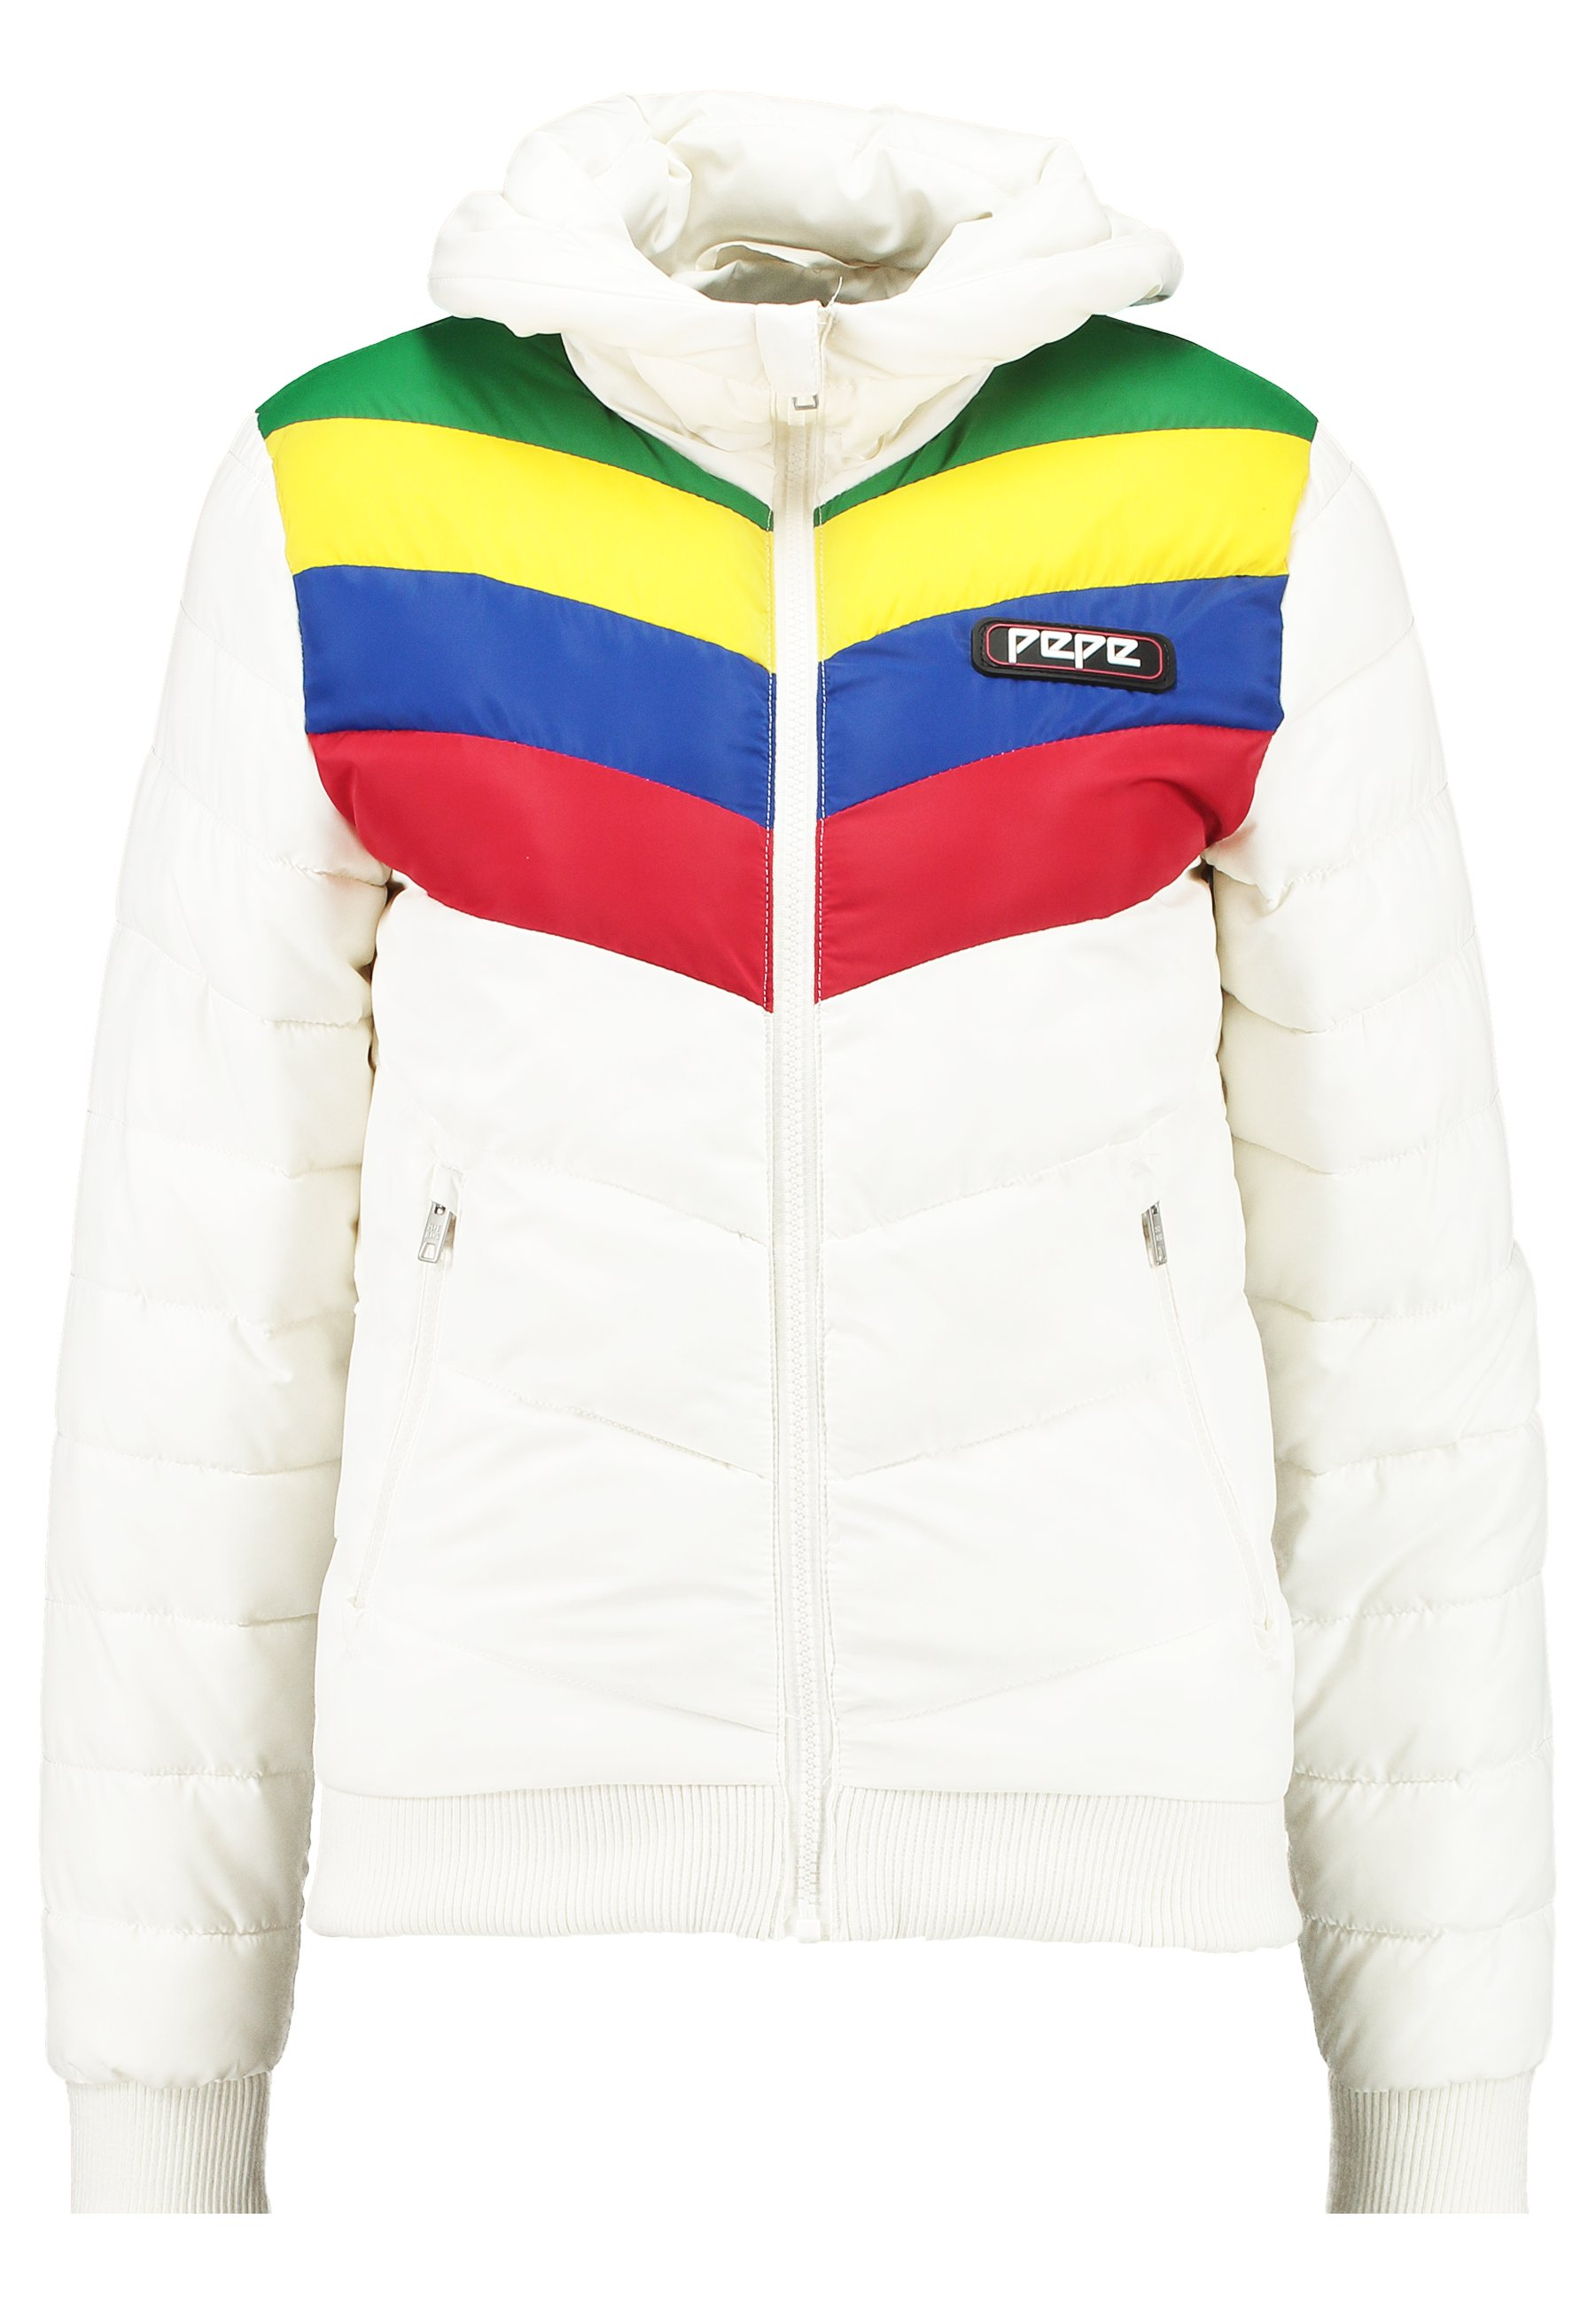 Pepe Jeans Vika - Übergangsjacke Mousse Black Friday